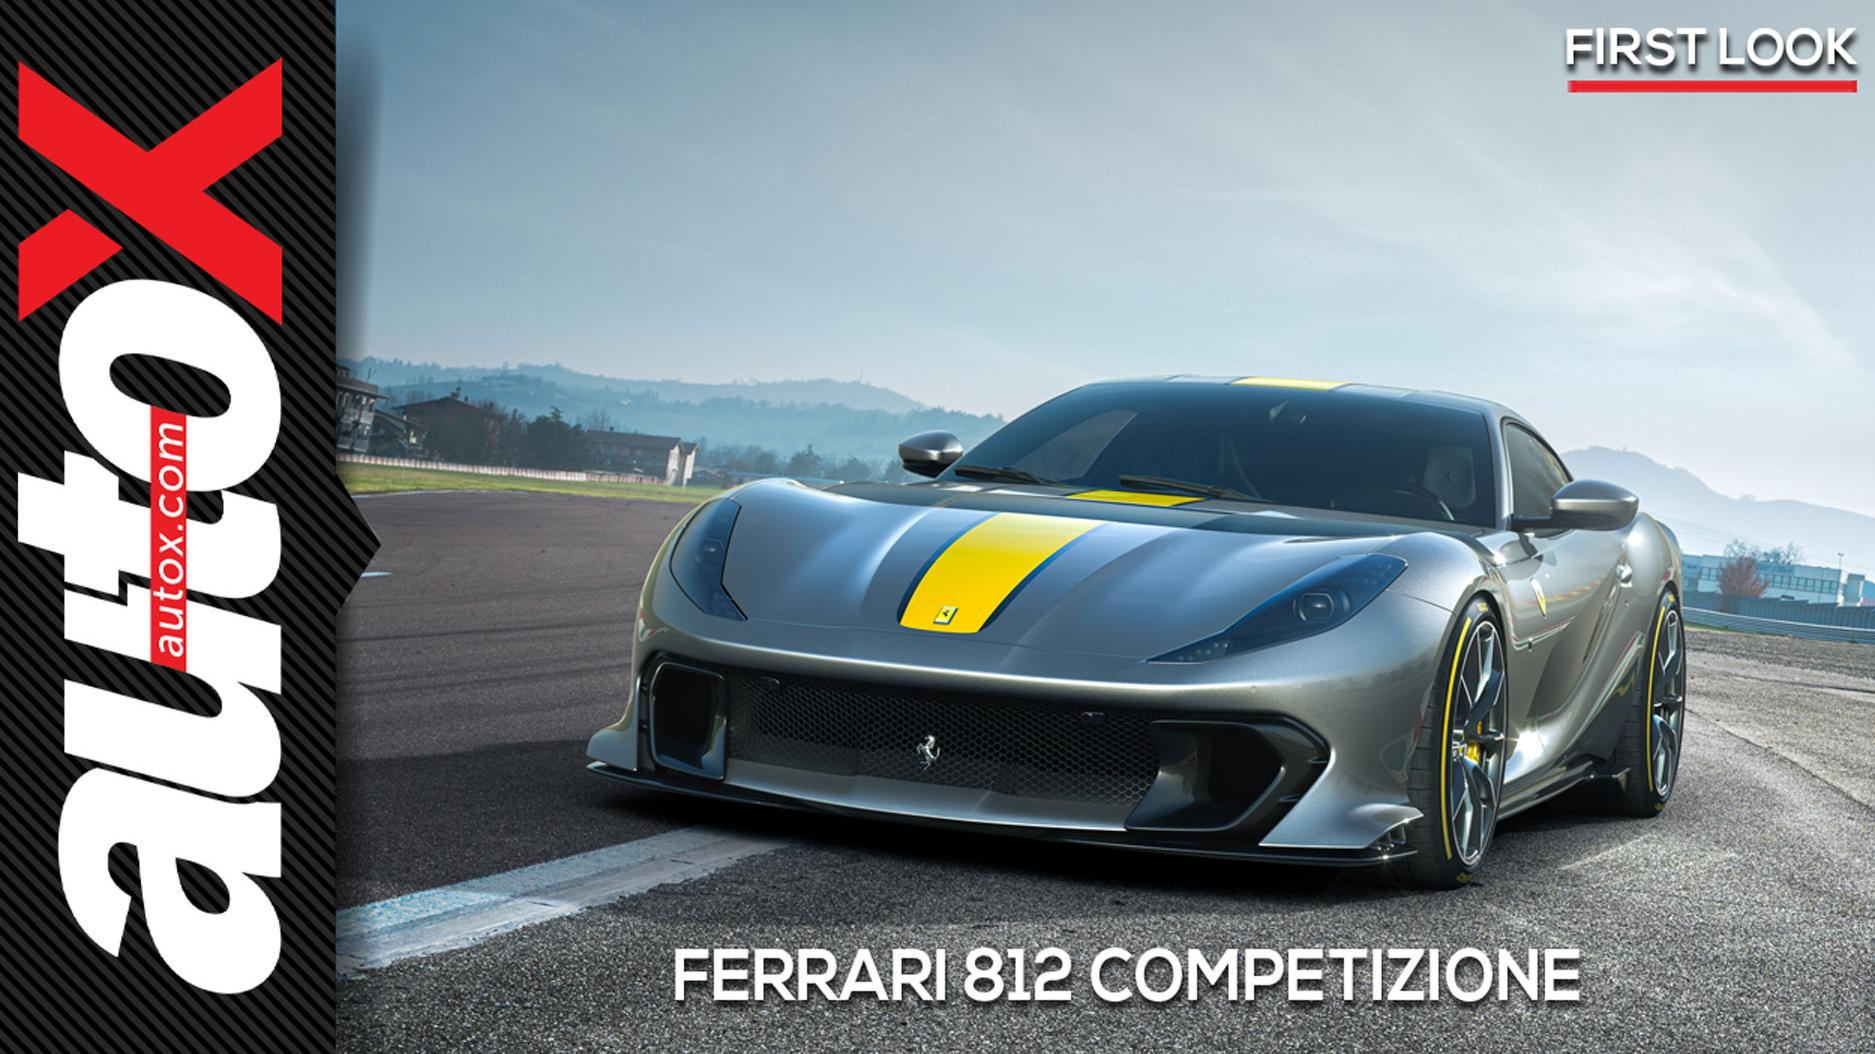 Ferrari 812 Competizione: Just how extreme is it? | First Look | autoX